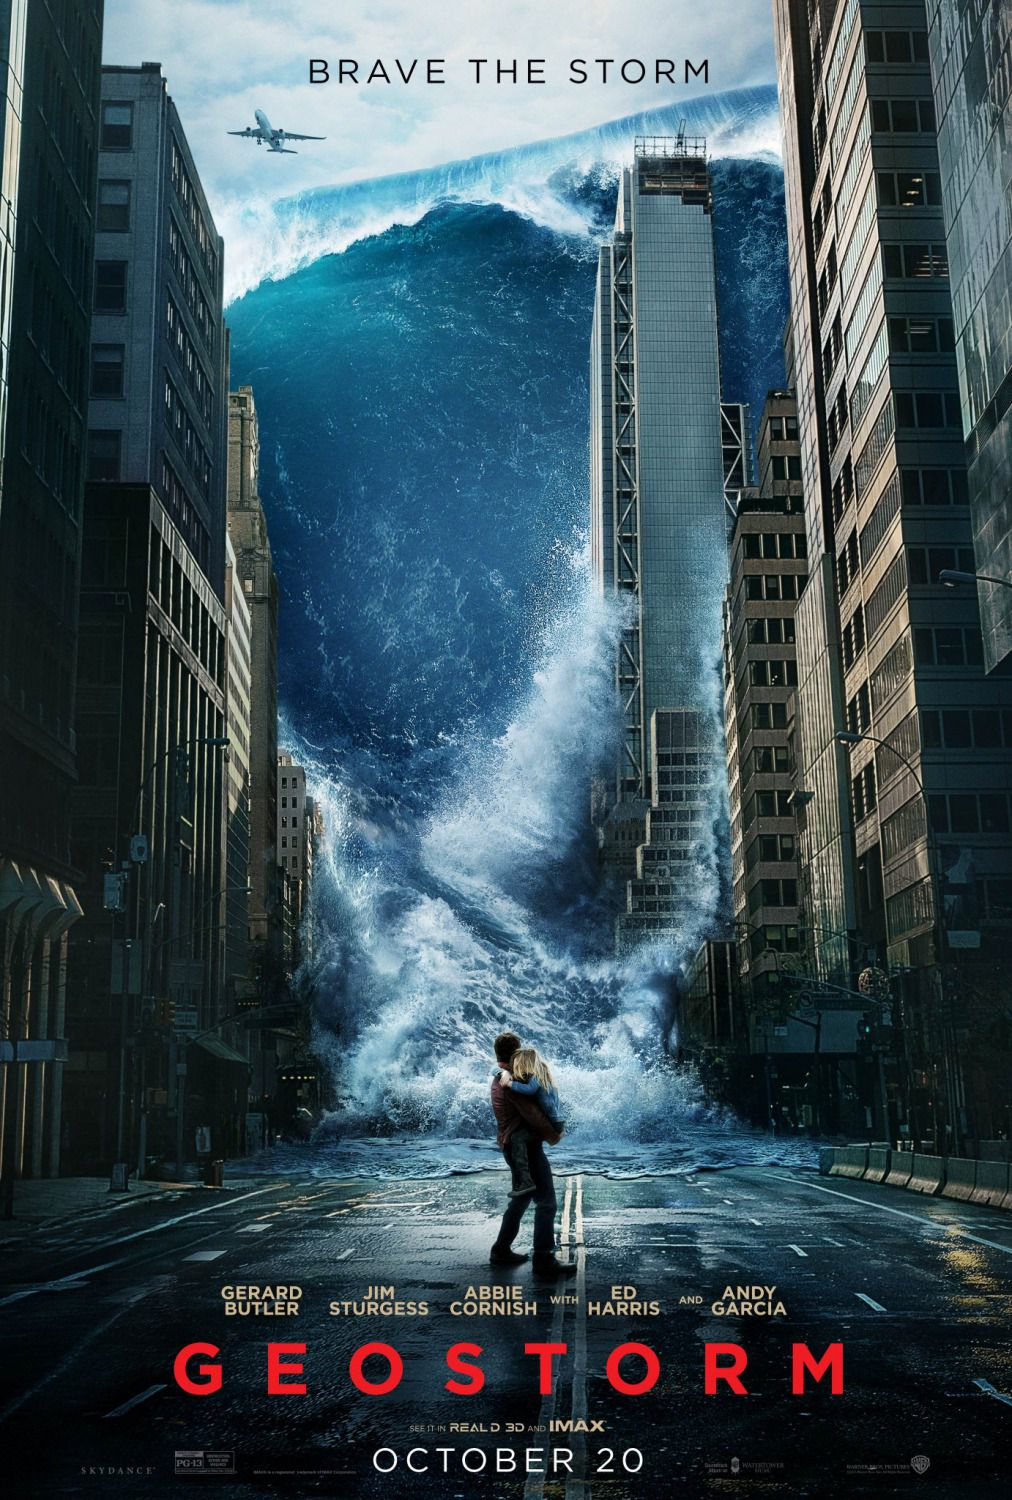 Geostorm - brave the storm - film poster - Gerard Butler - Jim Sturgess - Abbie Cornish - Ed Harris - Andy Garcia